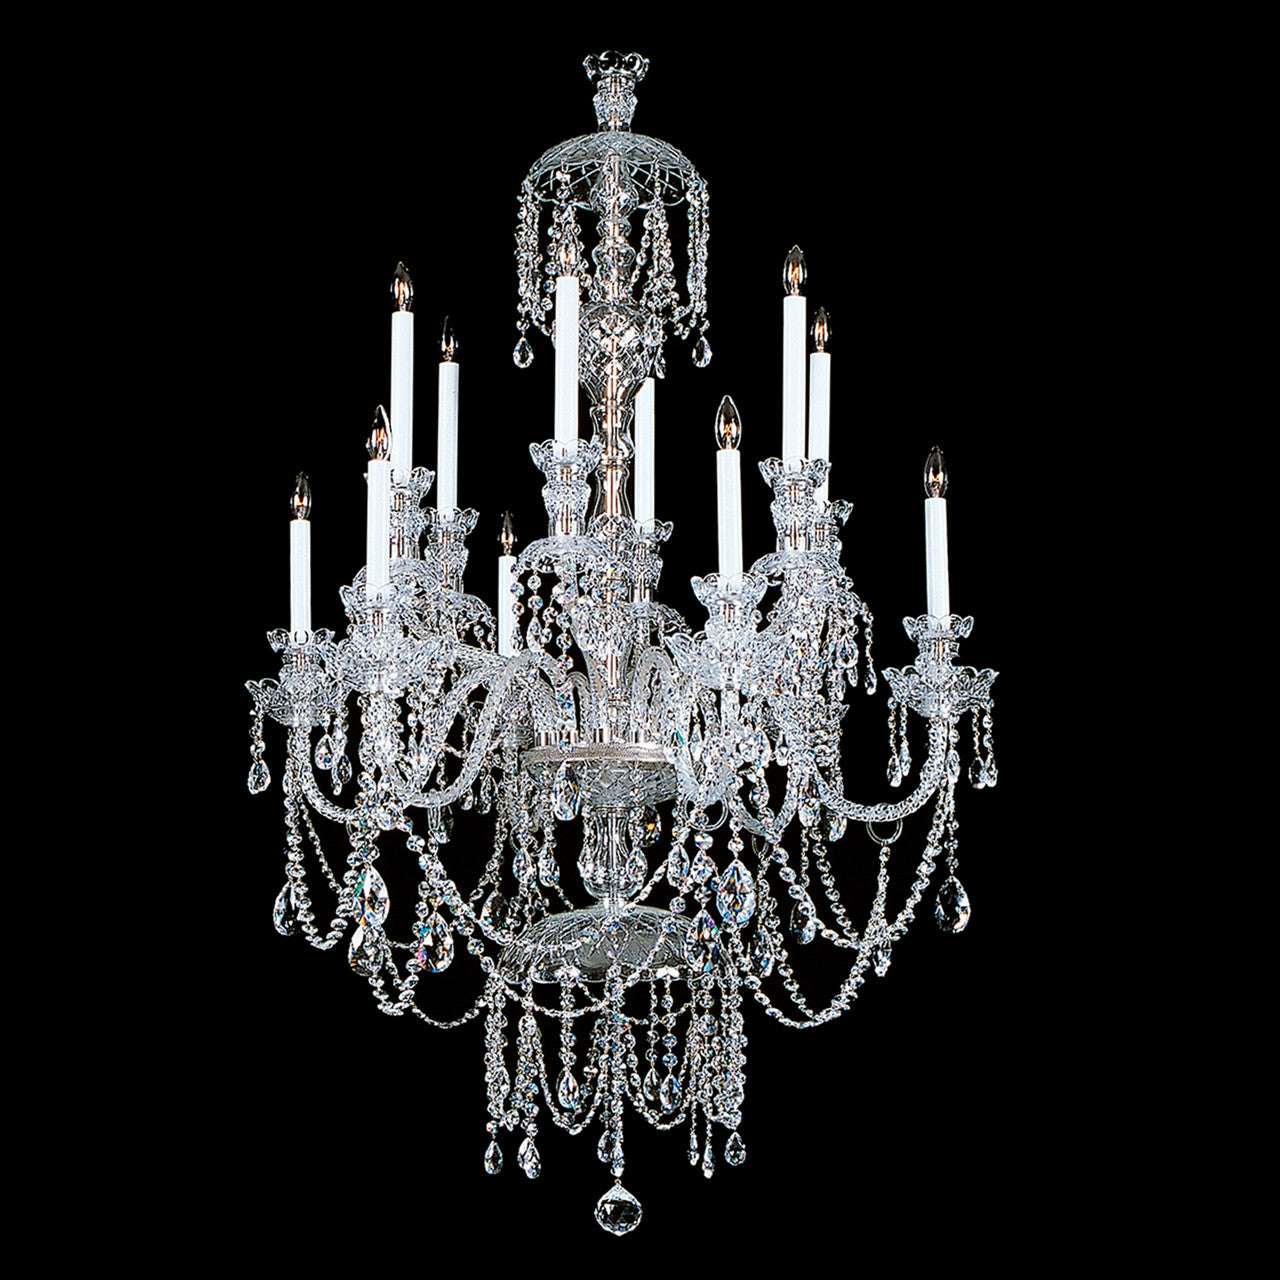 Winterking 12 light crystal chandelier with swarovski 32 x 52 crystal chandelier winterking with swarovski arubaitofo Images